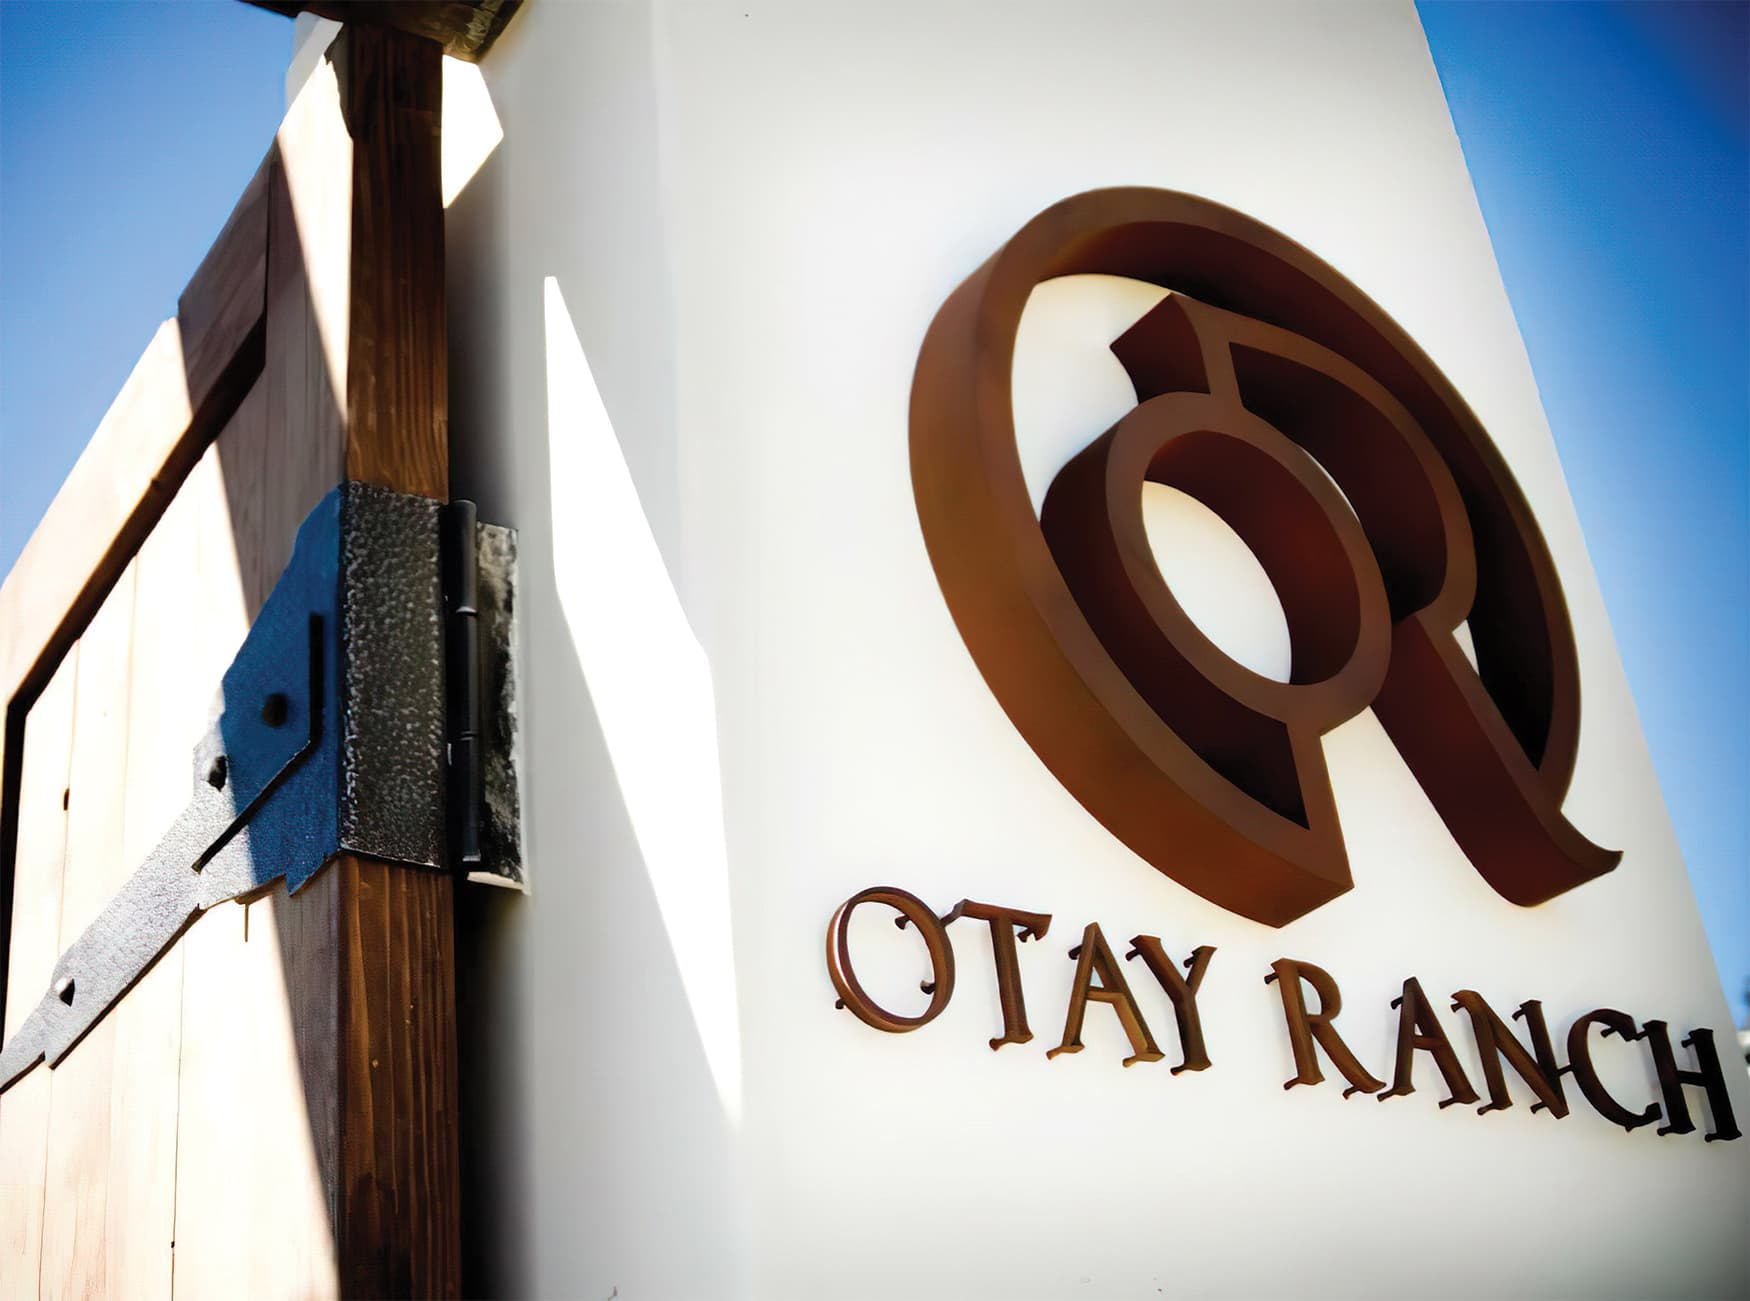 Otay Ranch, an outdoor retail development. Project Identity Signage.